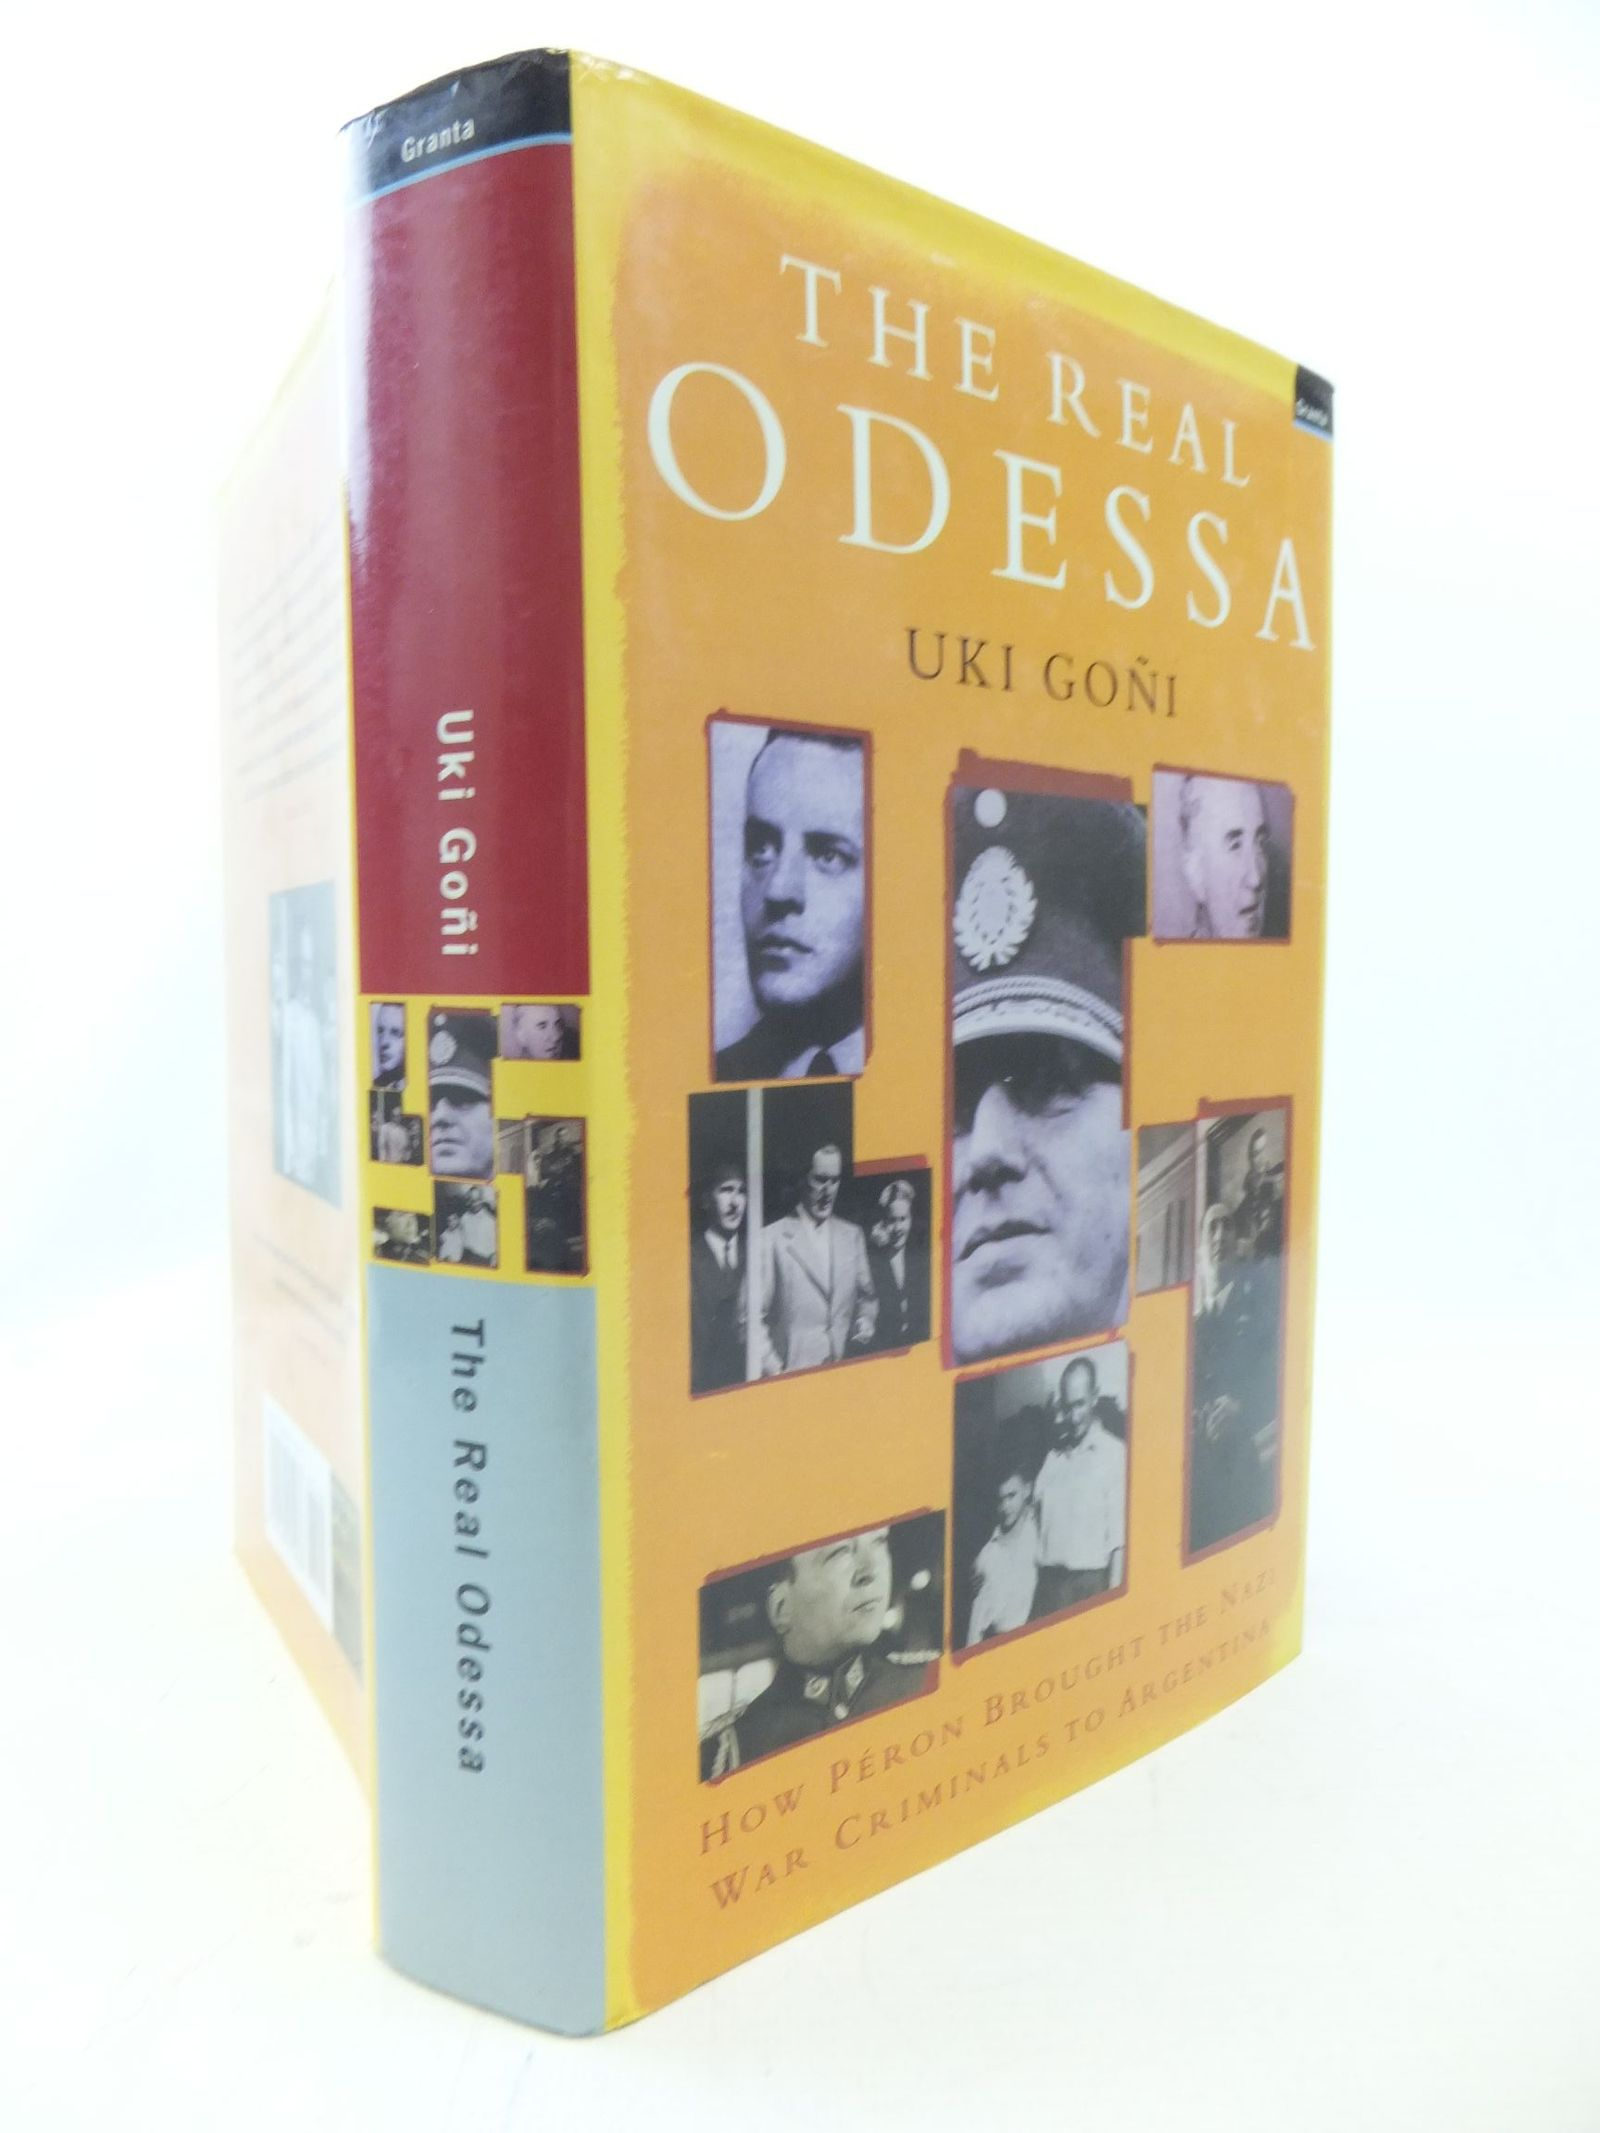 how peron brought nazi war criminals to argentina in the real odessa It has long been known that adolf eichmann, josef mengele, erich priebke and many other nazi war criminals found refuge in argentina in this book, a courageous argentinian writer shows exactly how it was done, and reveals that the escapes were organized with the enthusiastic support of president juan peron.